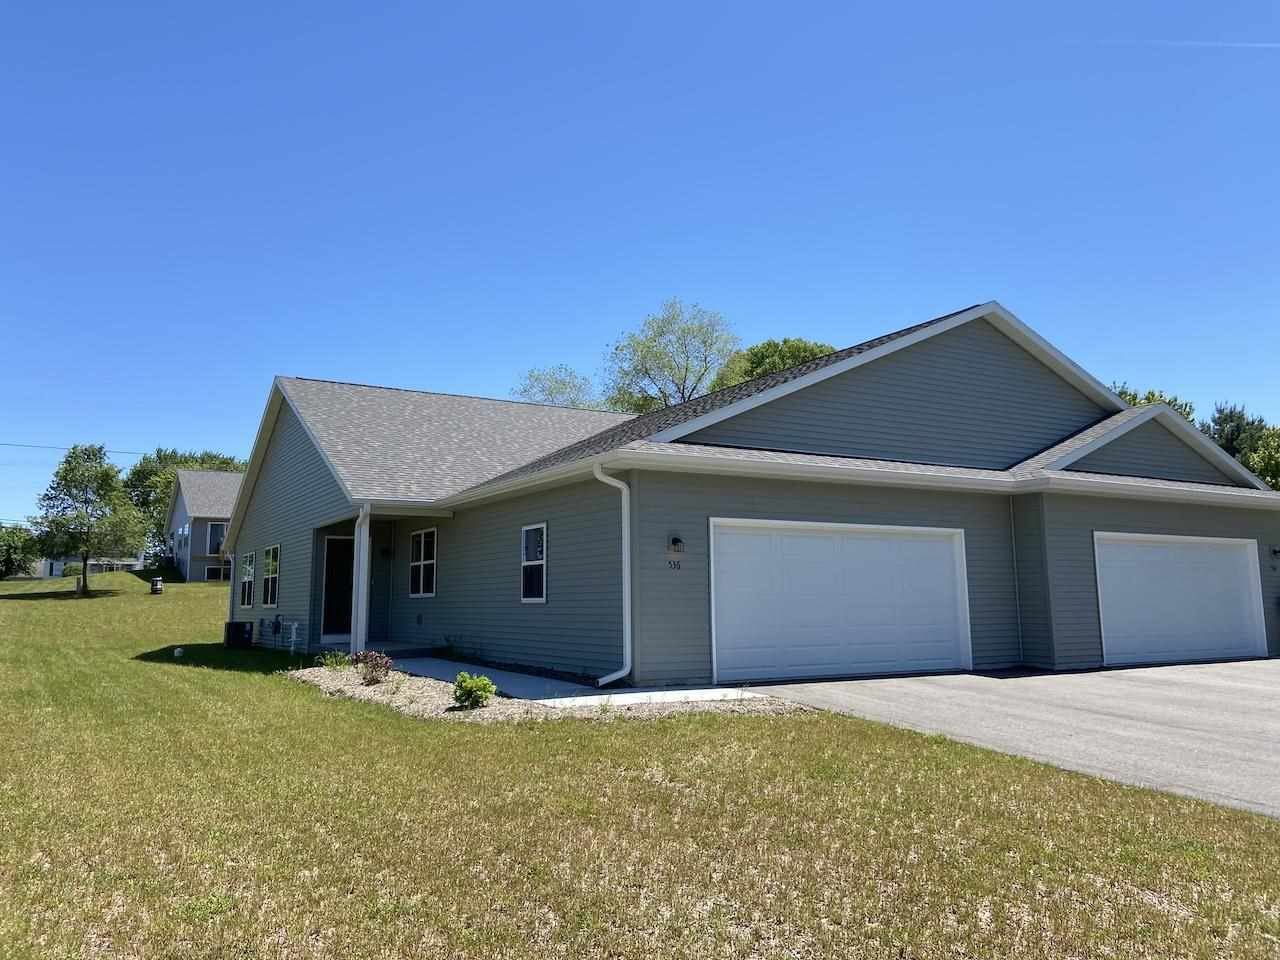 536 River Dr, Berlin, WI 54923 - #: 1910097